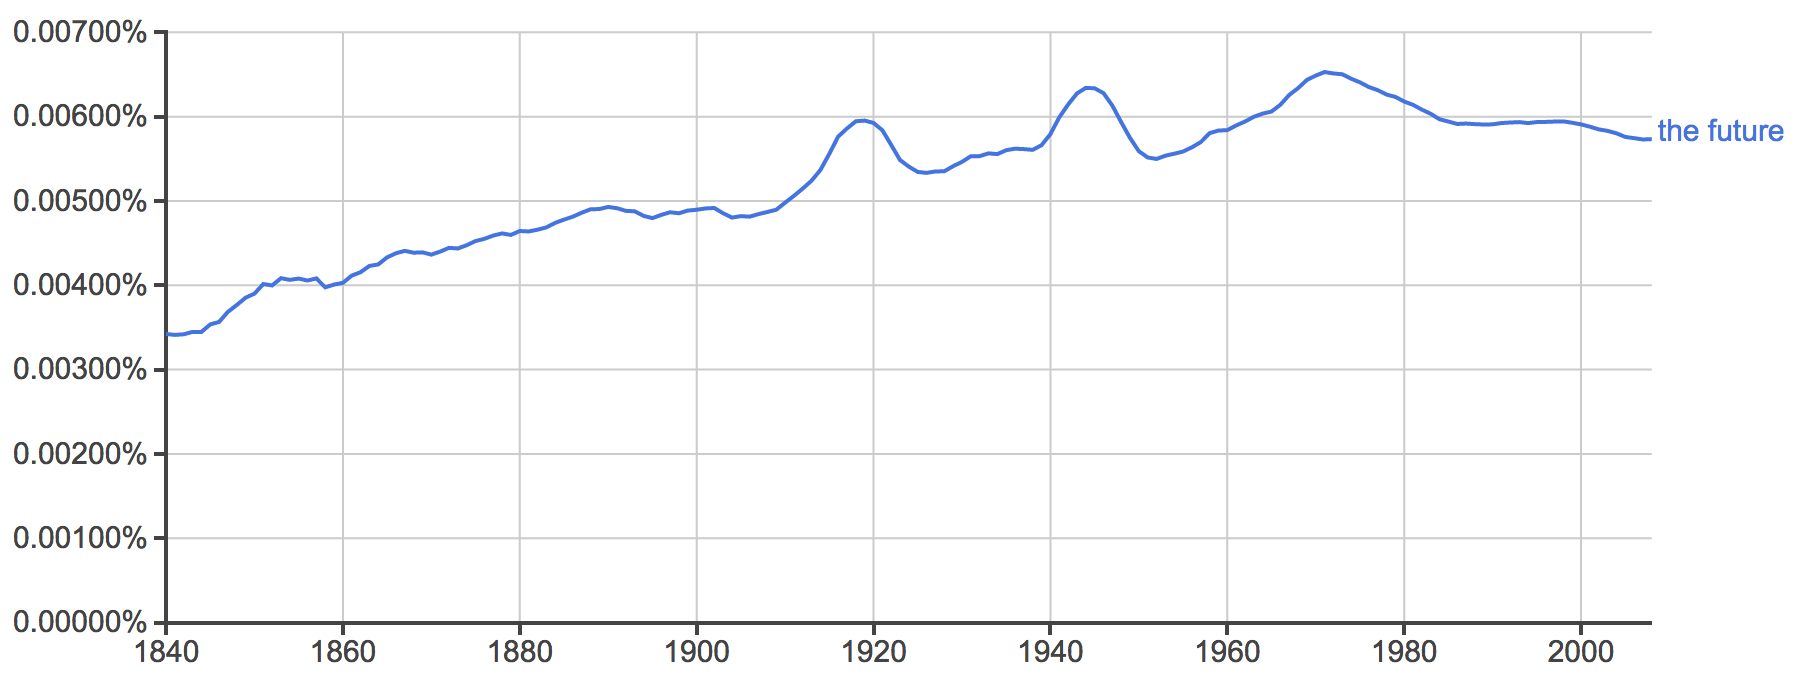 "ngram of ""the future"" tappers off after the year 2000"